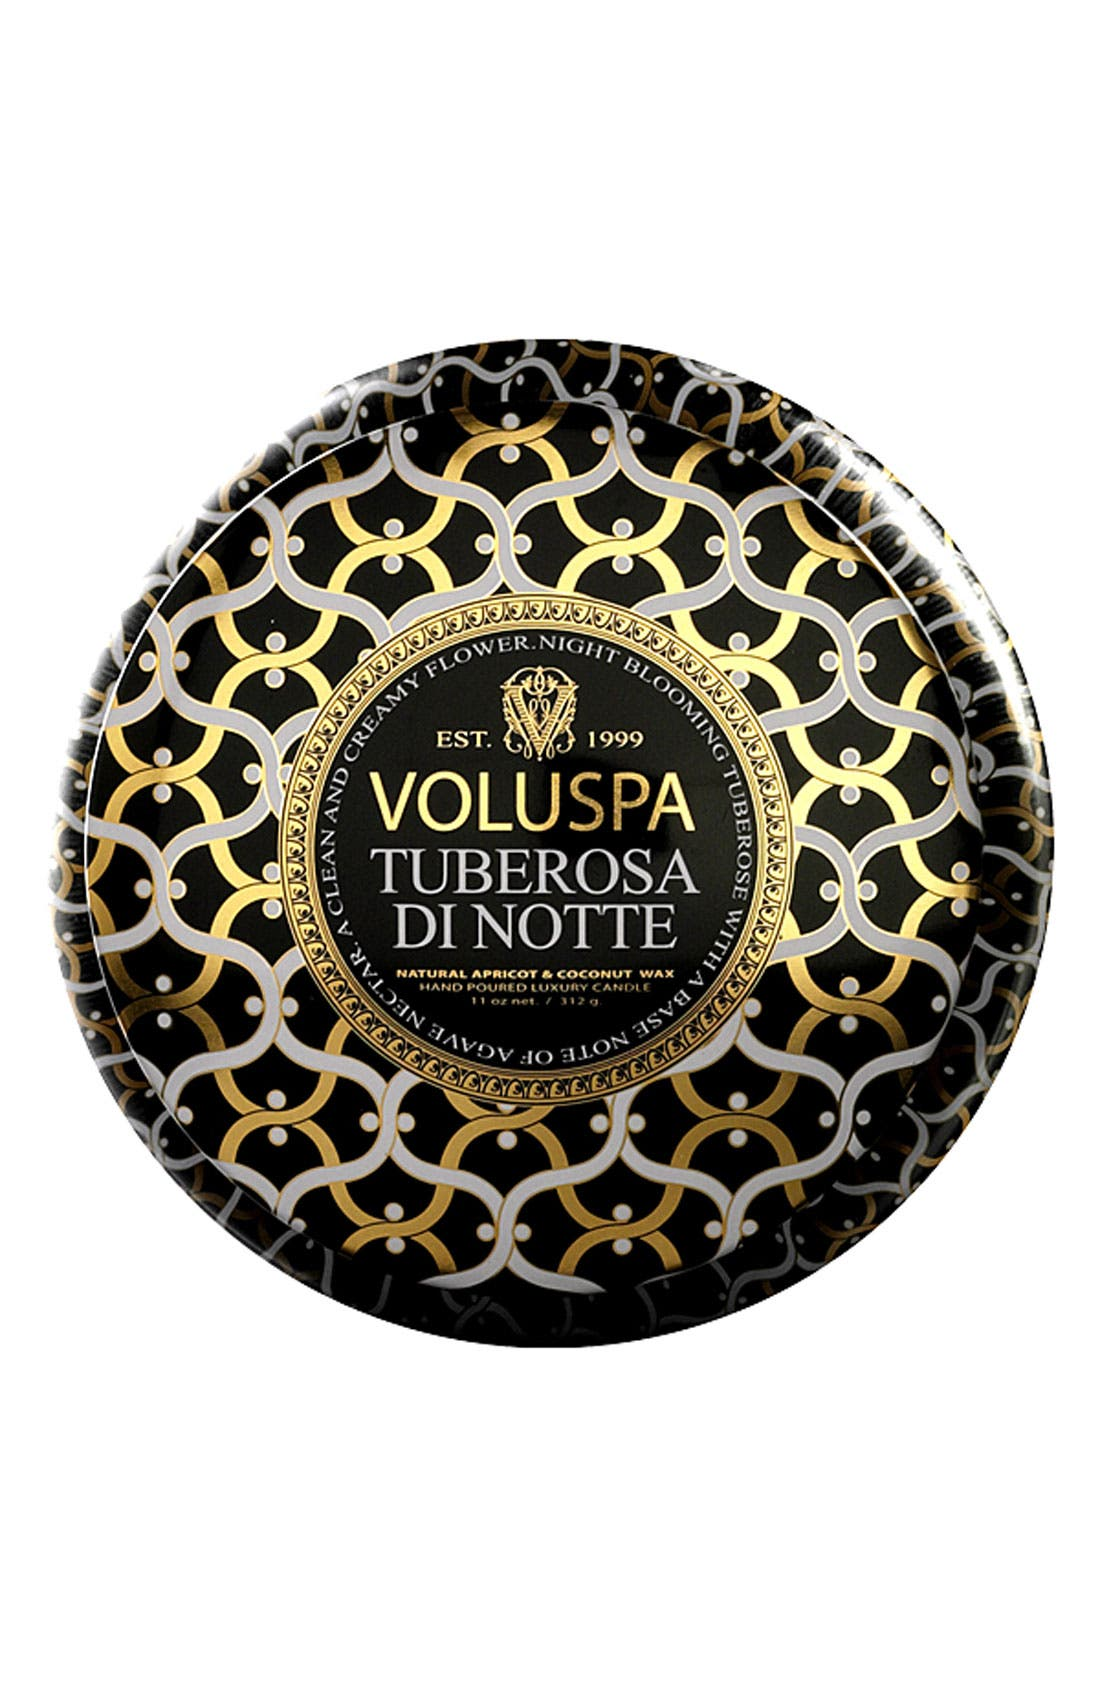 Alternate Image 1 Selected - Voluspa 'Maison Noir - Tuberosa di Notte' 2-Wick Scented Candle